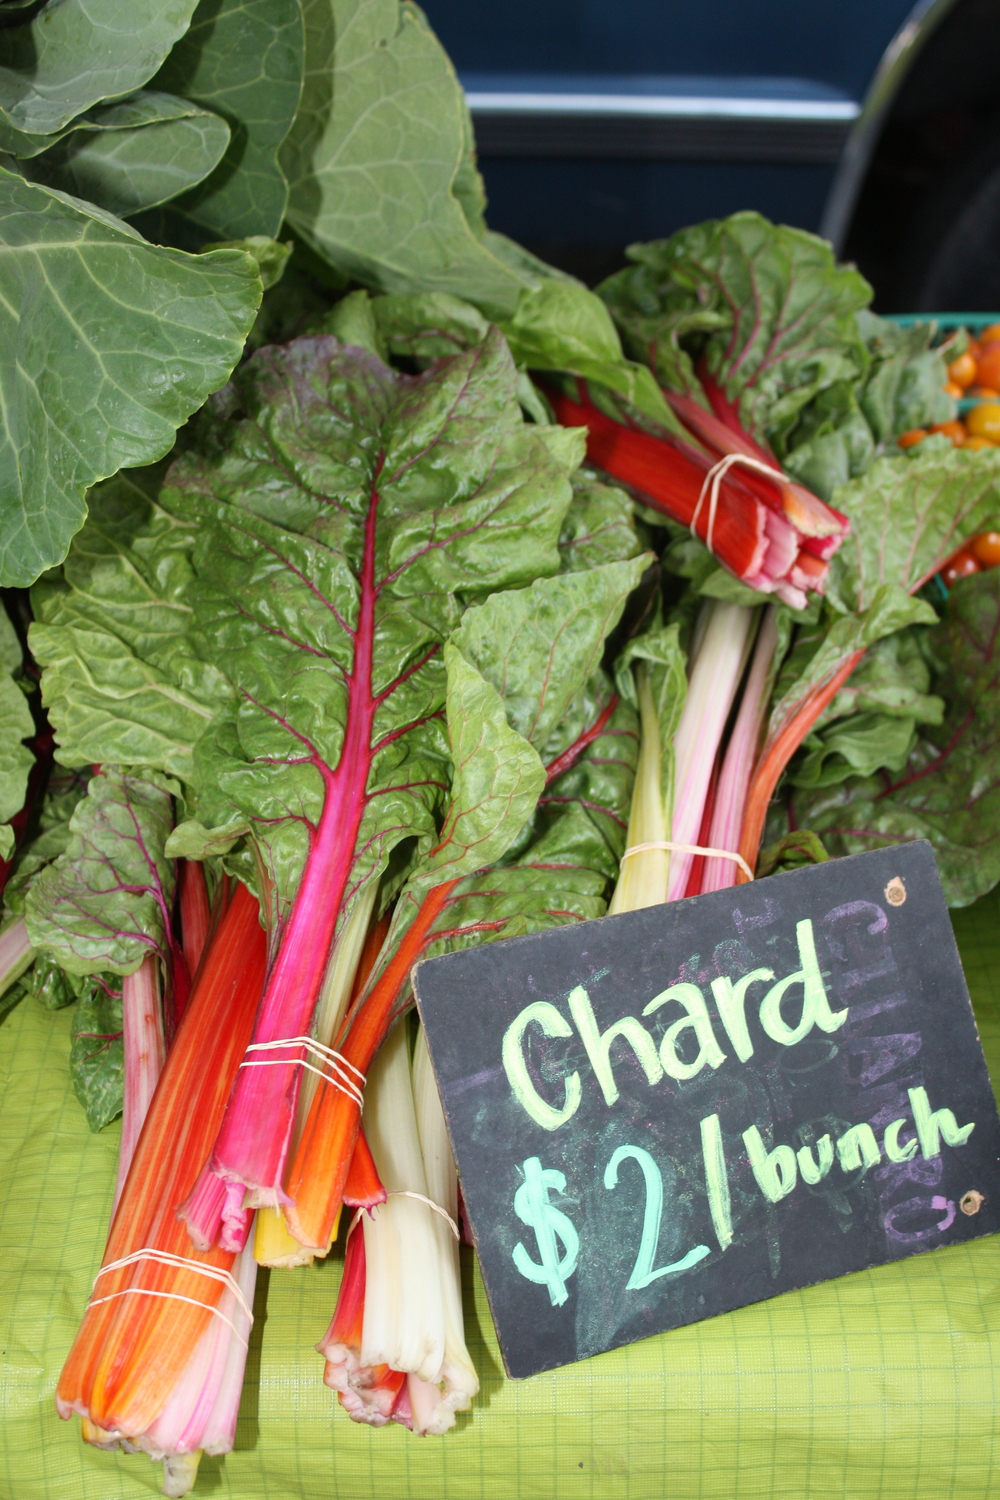 Fresh stalks of chard for sale at the Veggielution Farmstand.